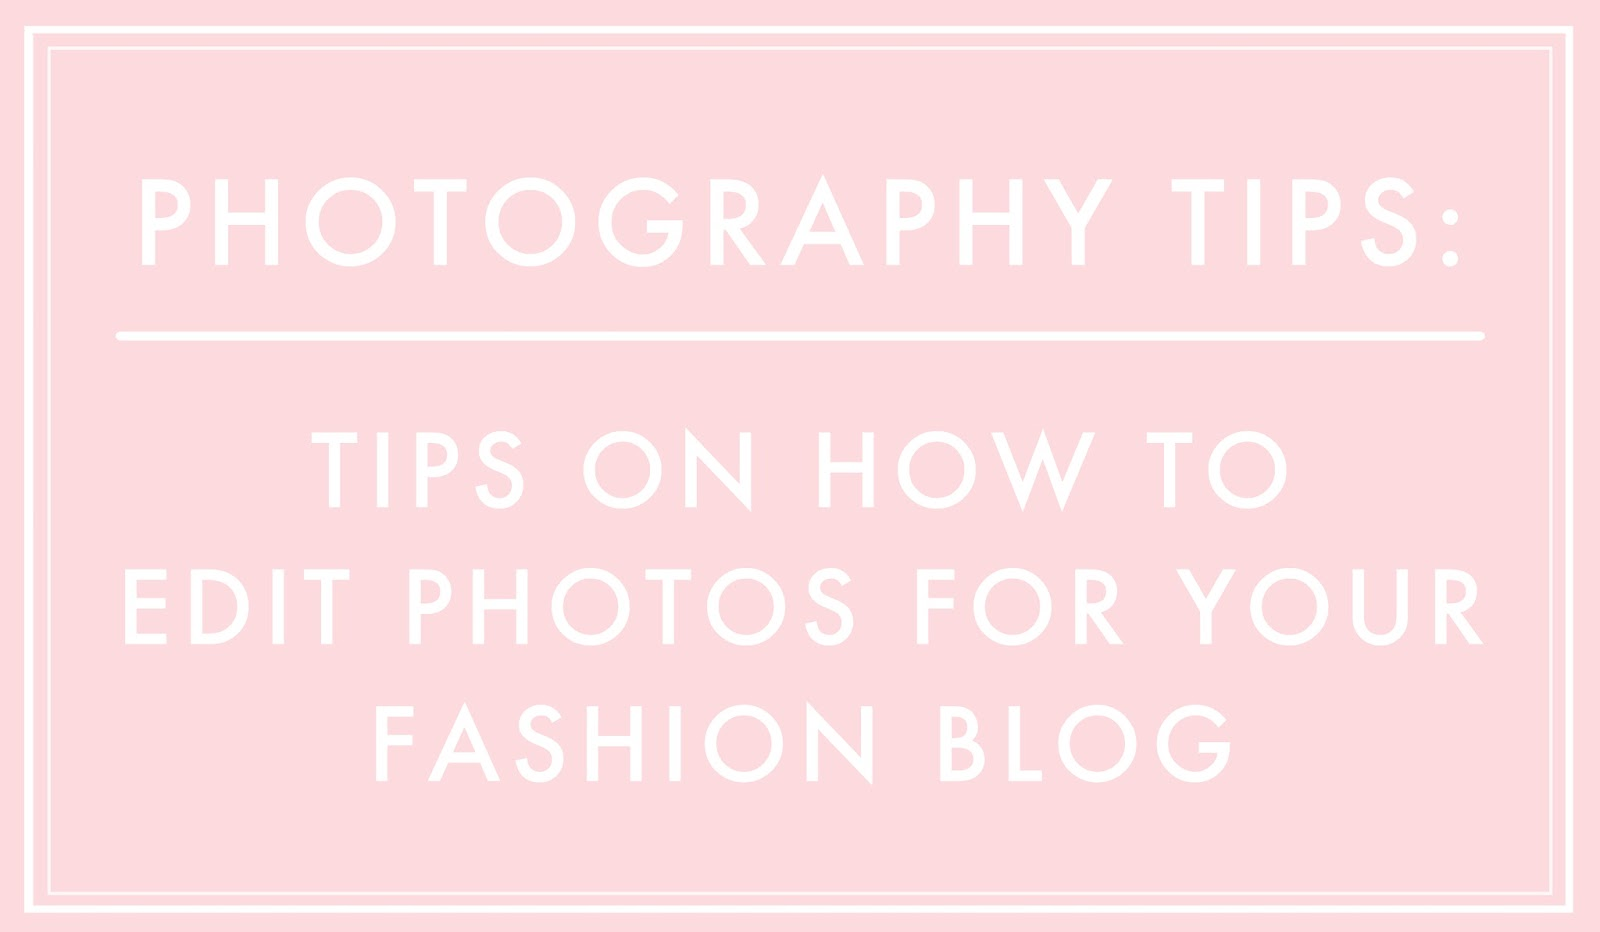 tips on how to edit photograph for fashion blog, fashion blogging tips, blogging tips